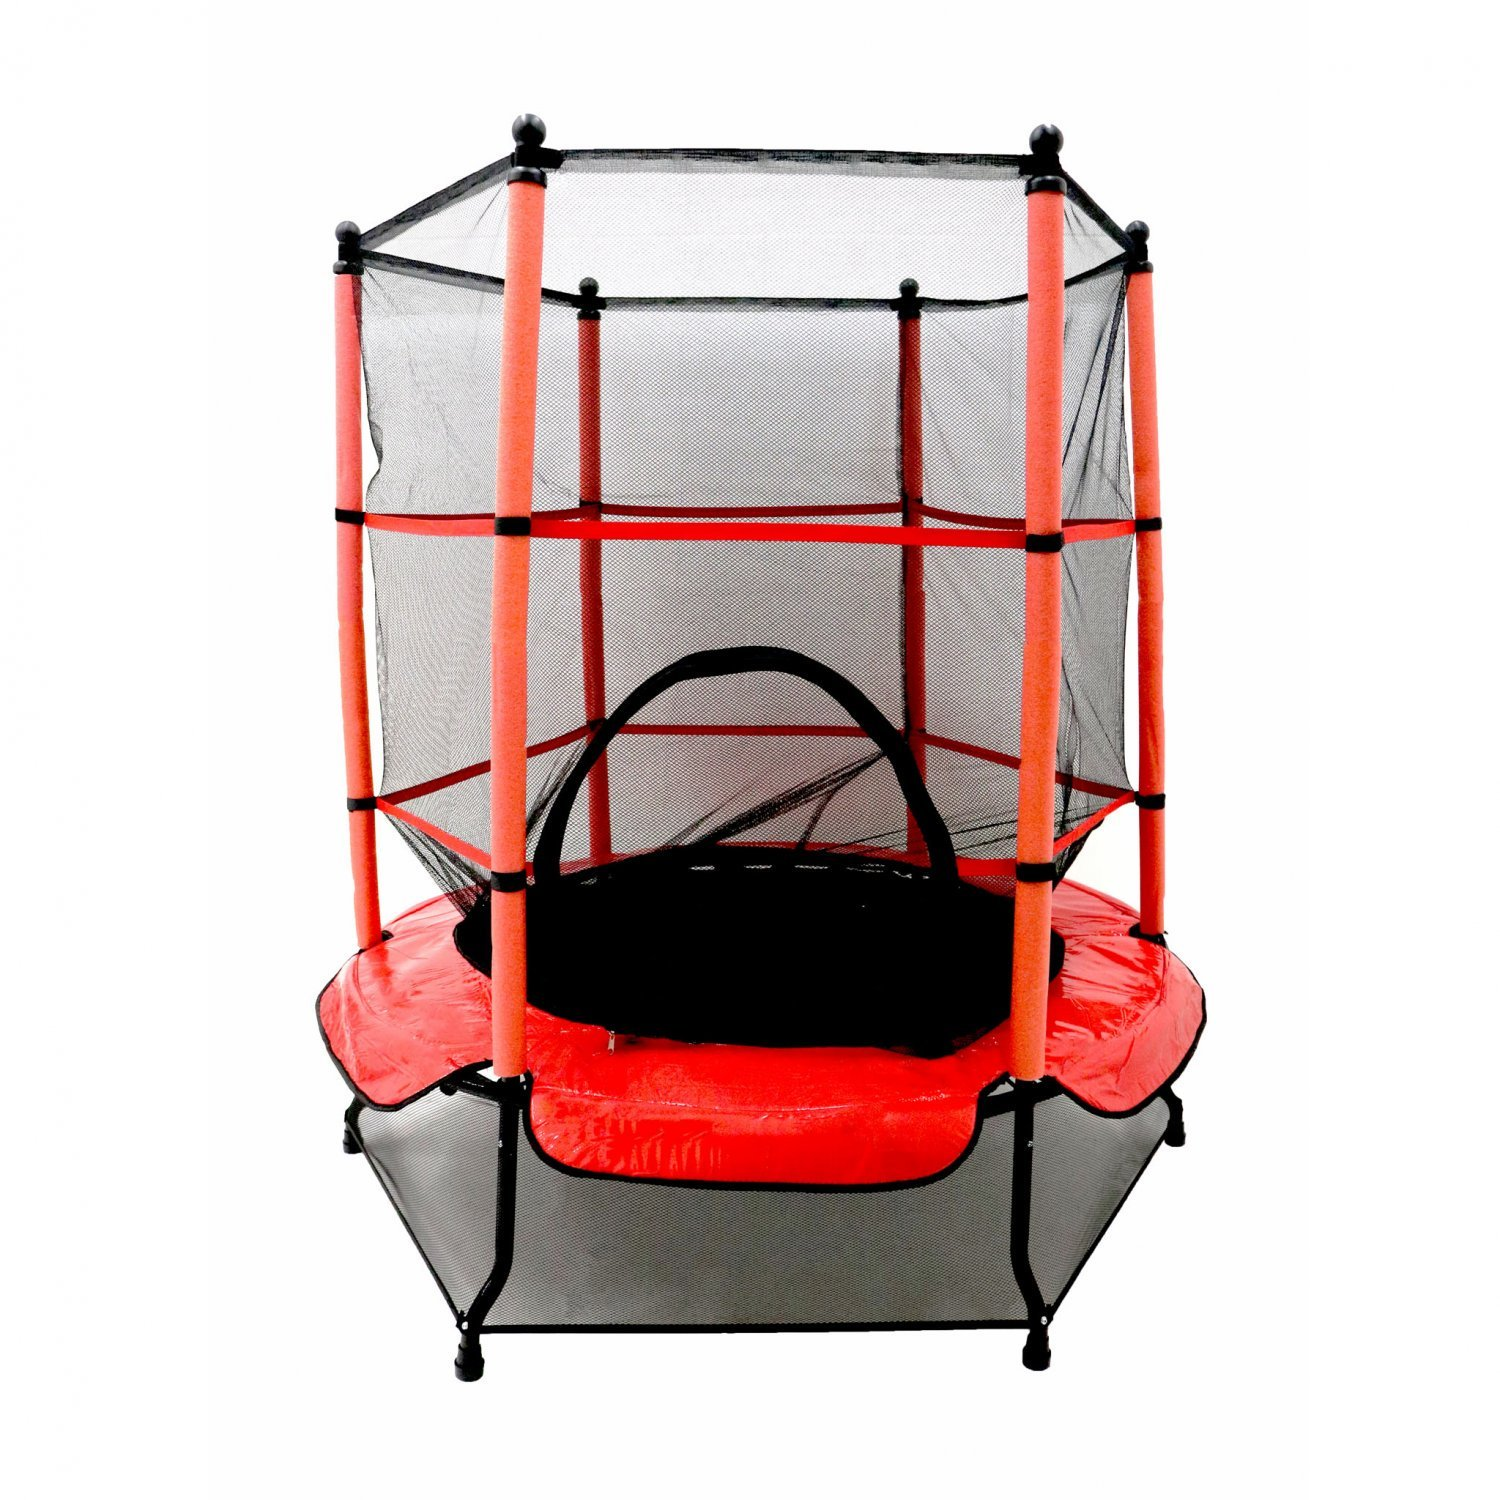 "Oypla 55"" Kids First Trampoline with Safety Net Enclosure & Red Cover Garden Outdoors"